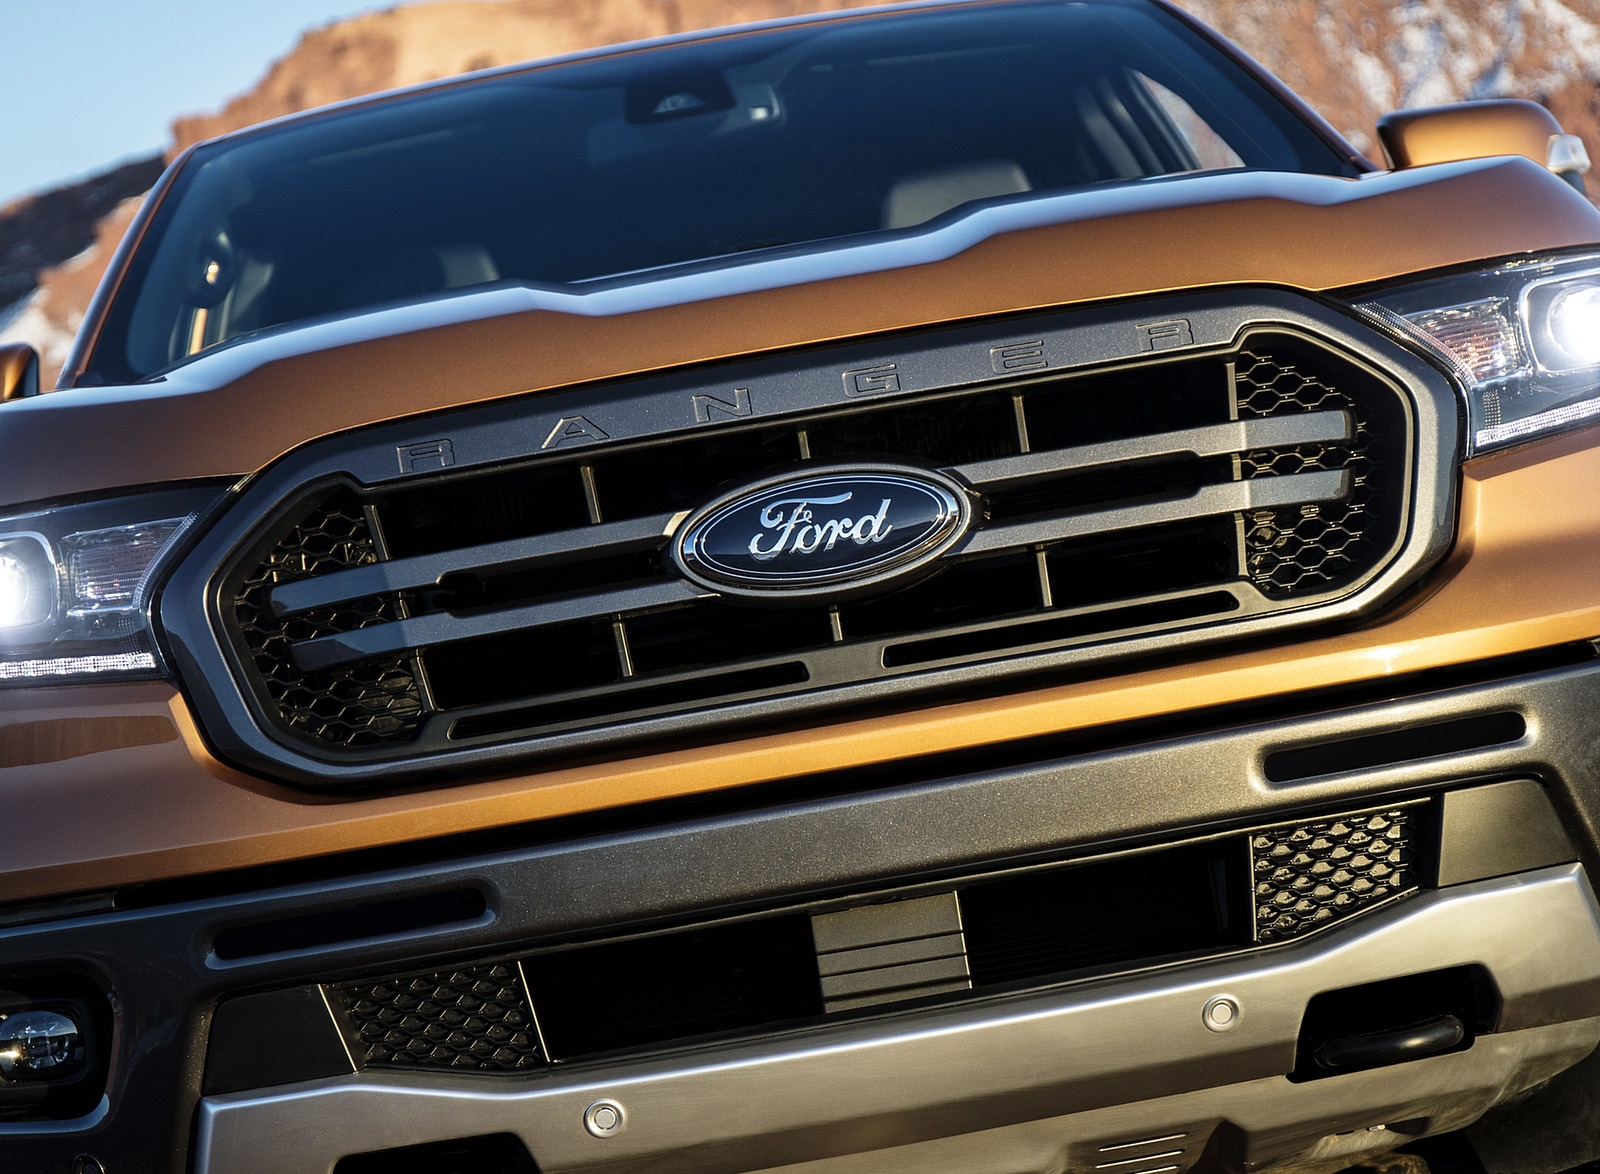 2019 Ford Ranger Grill Wallpapers (15)